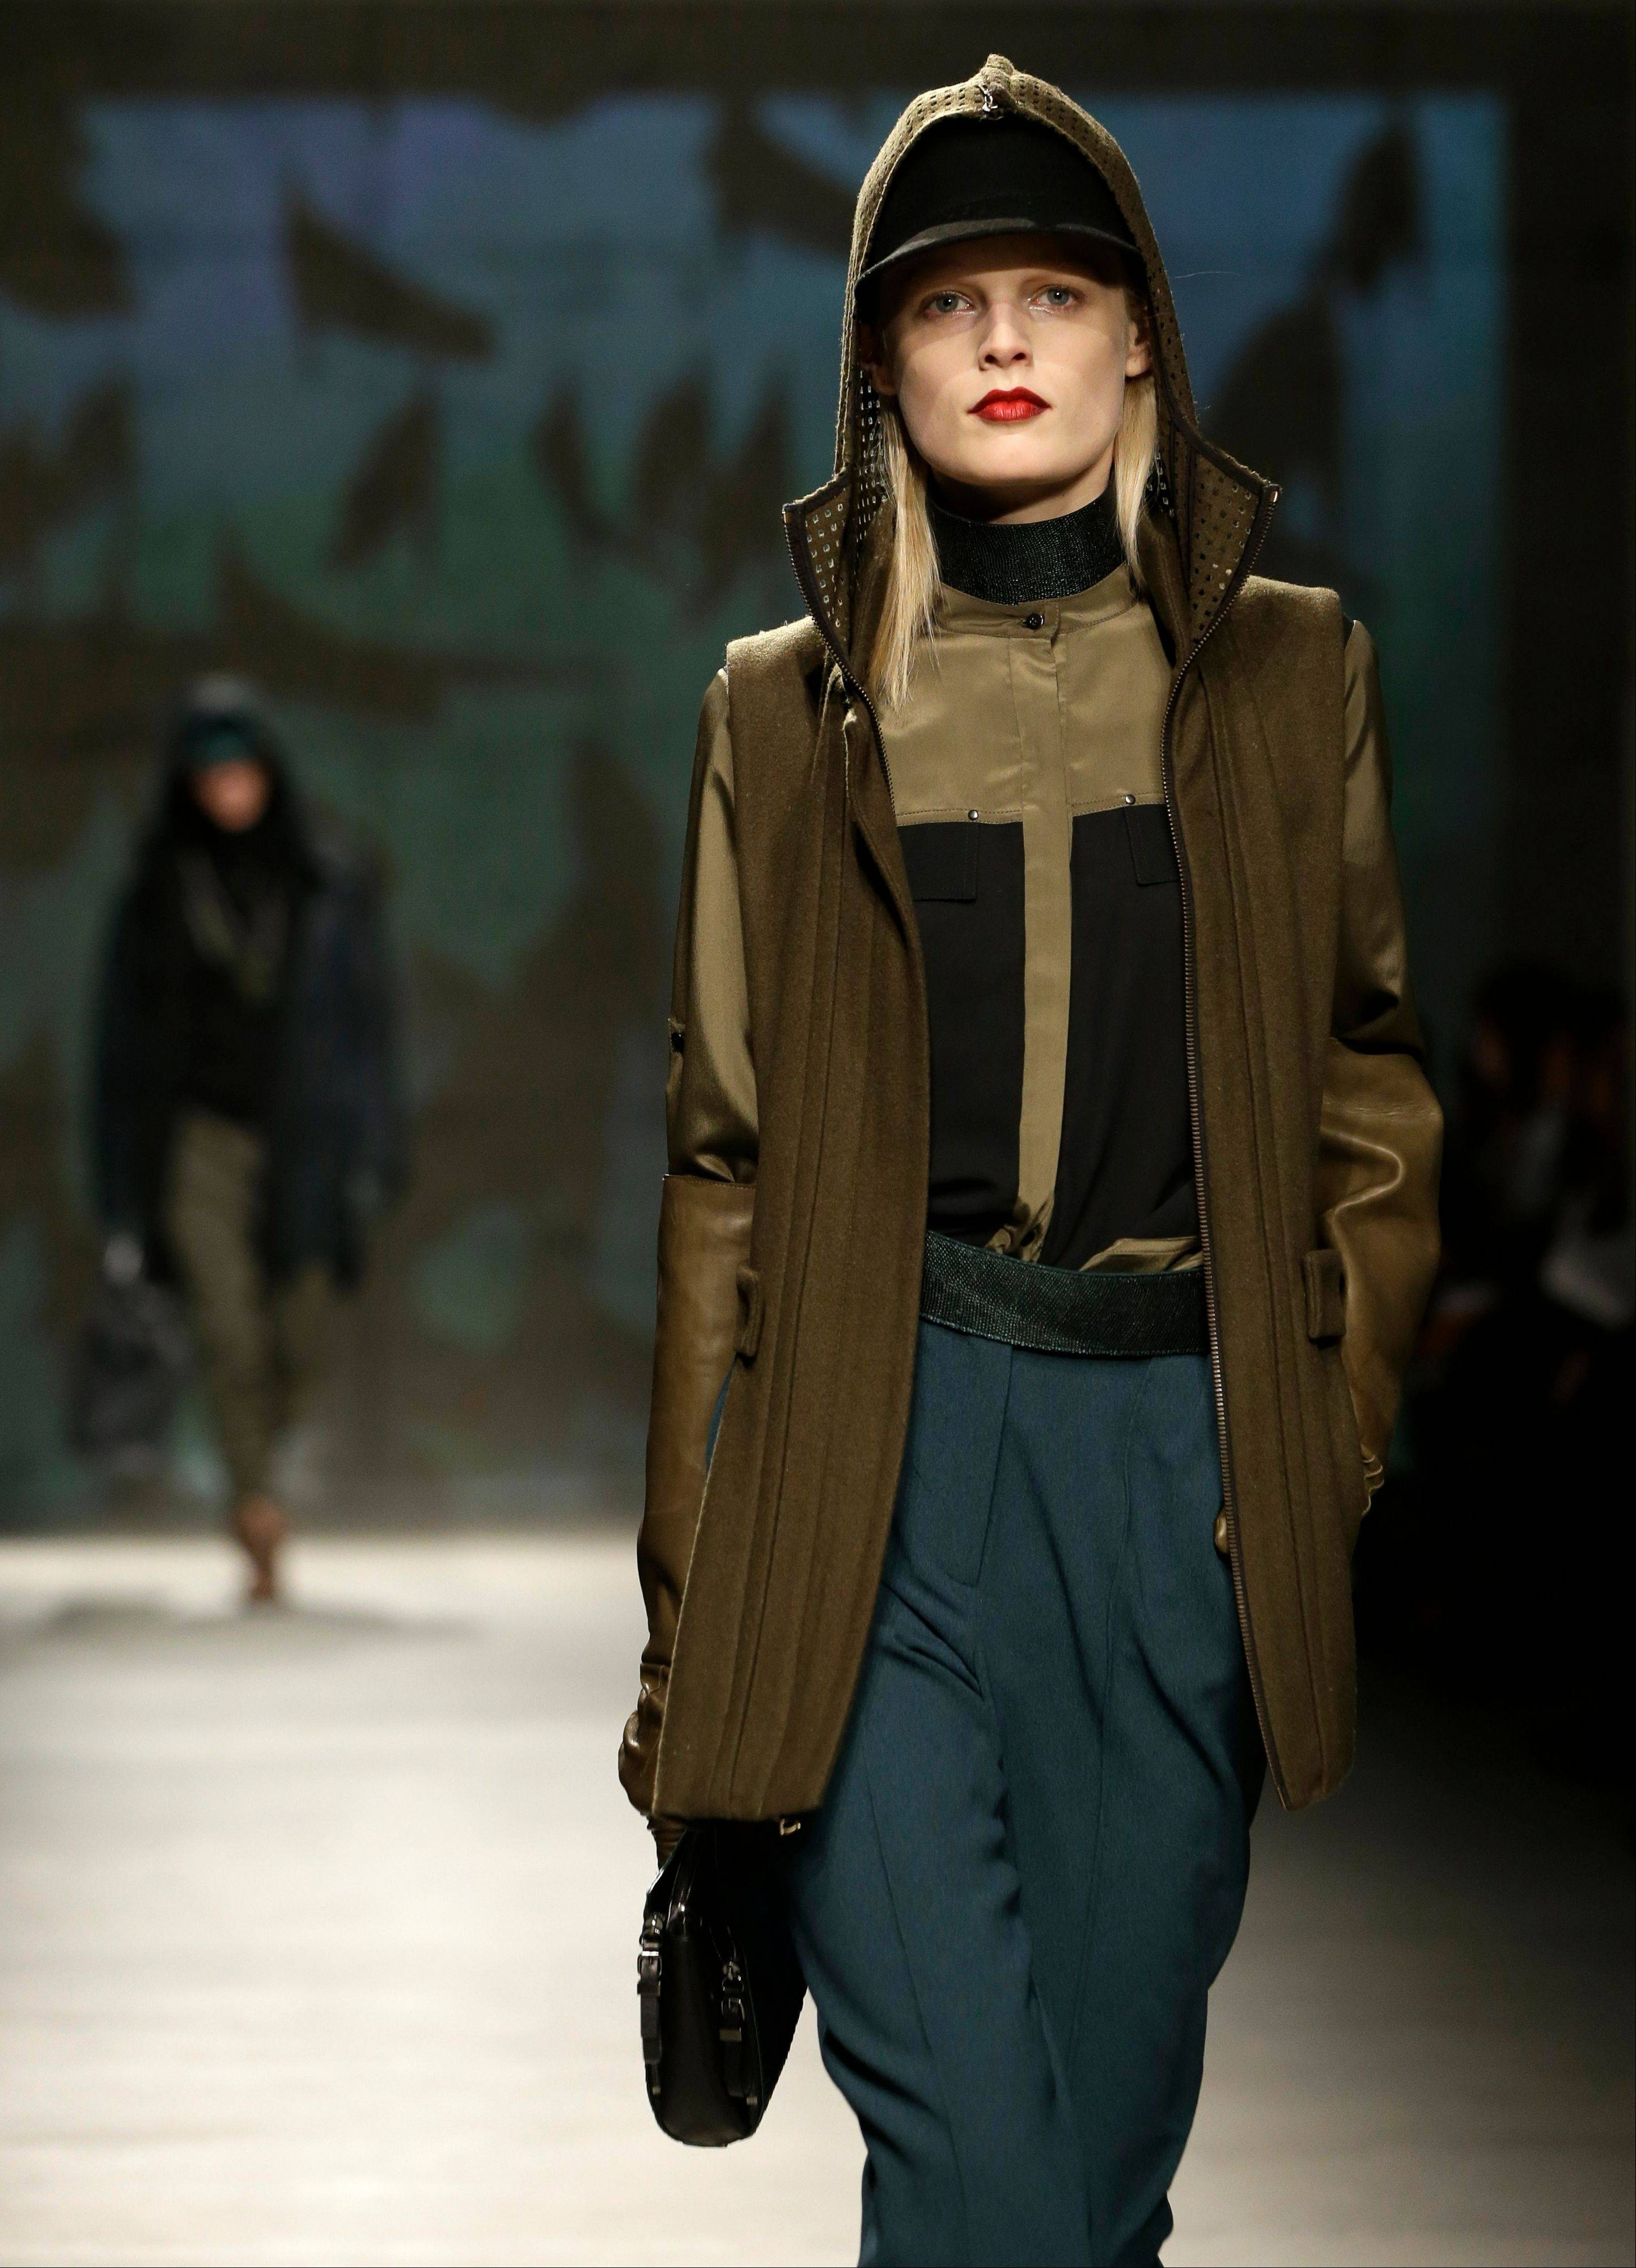 A model walks the runway at the presentation of the Kenneth Cole Fall 2013 fashion collection during Fashion Week in New York.